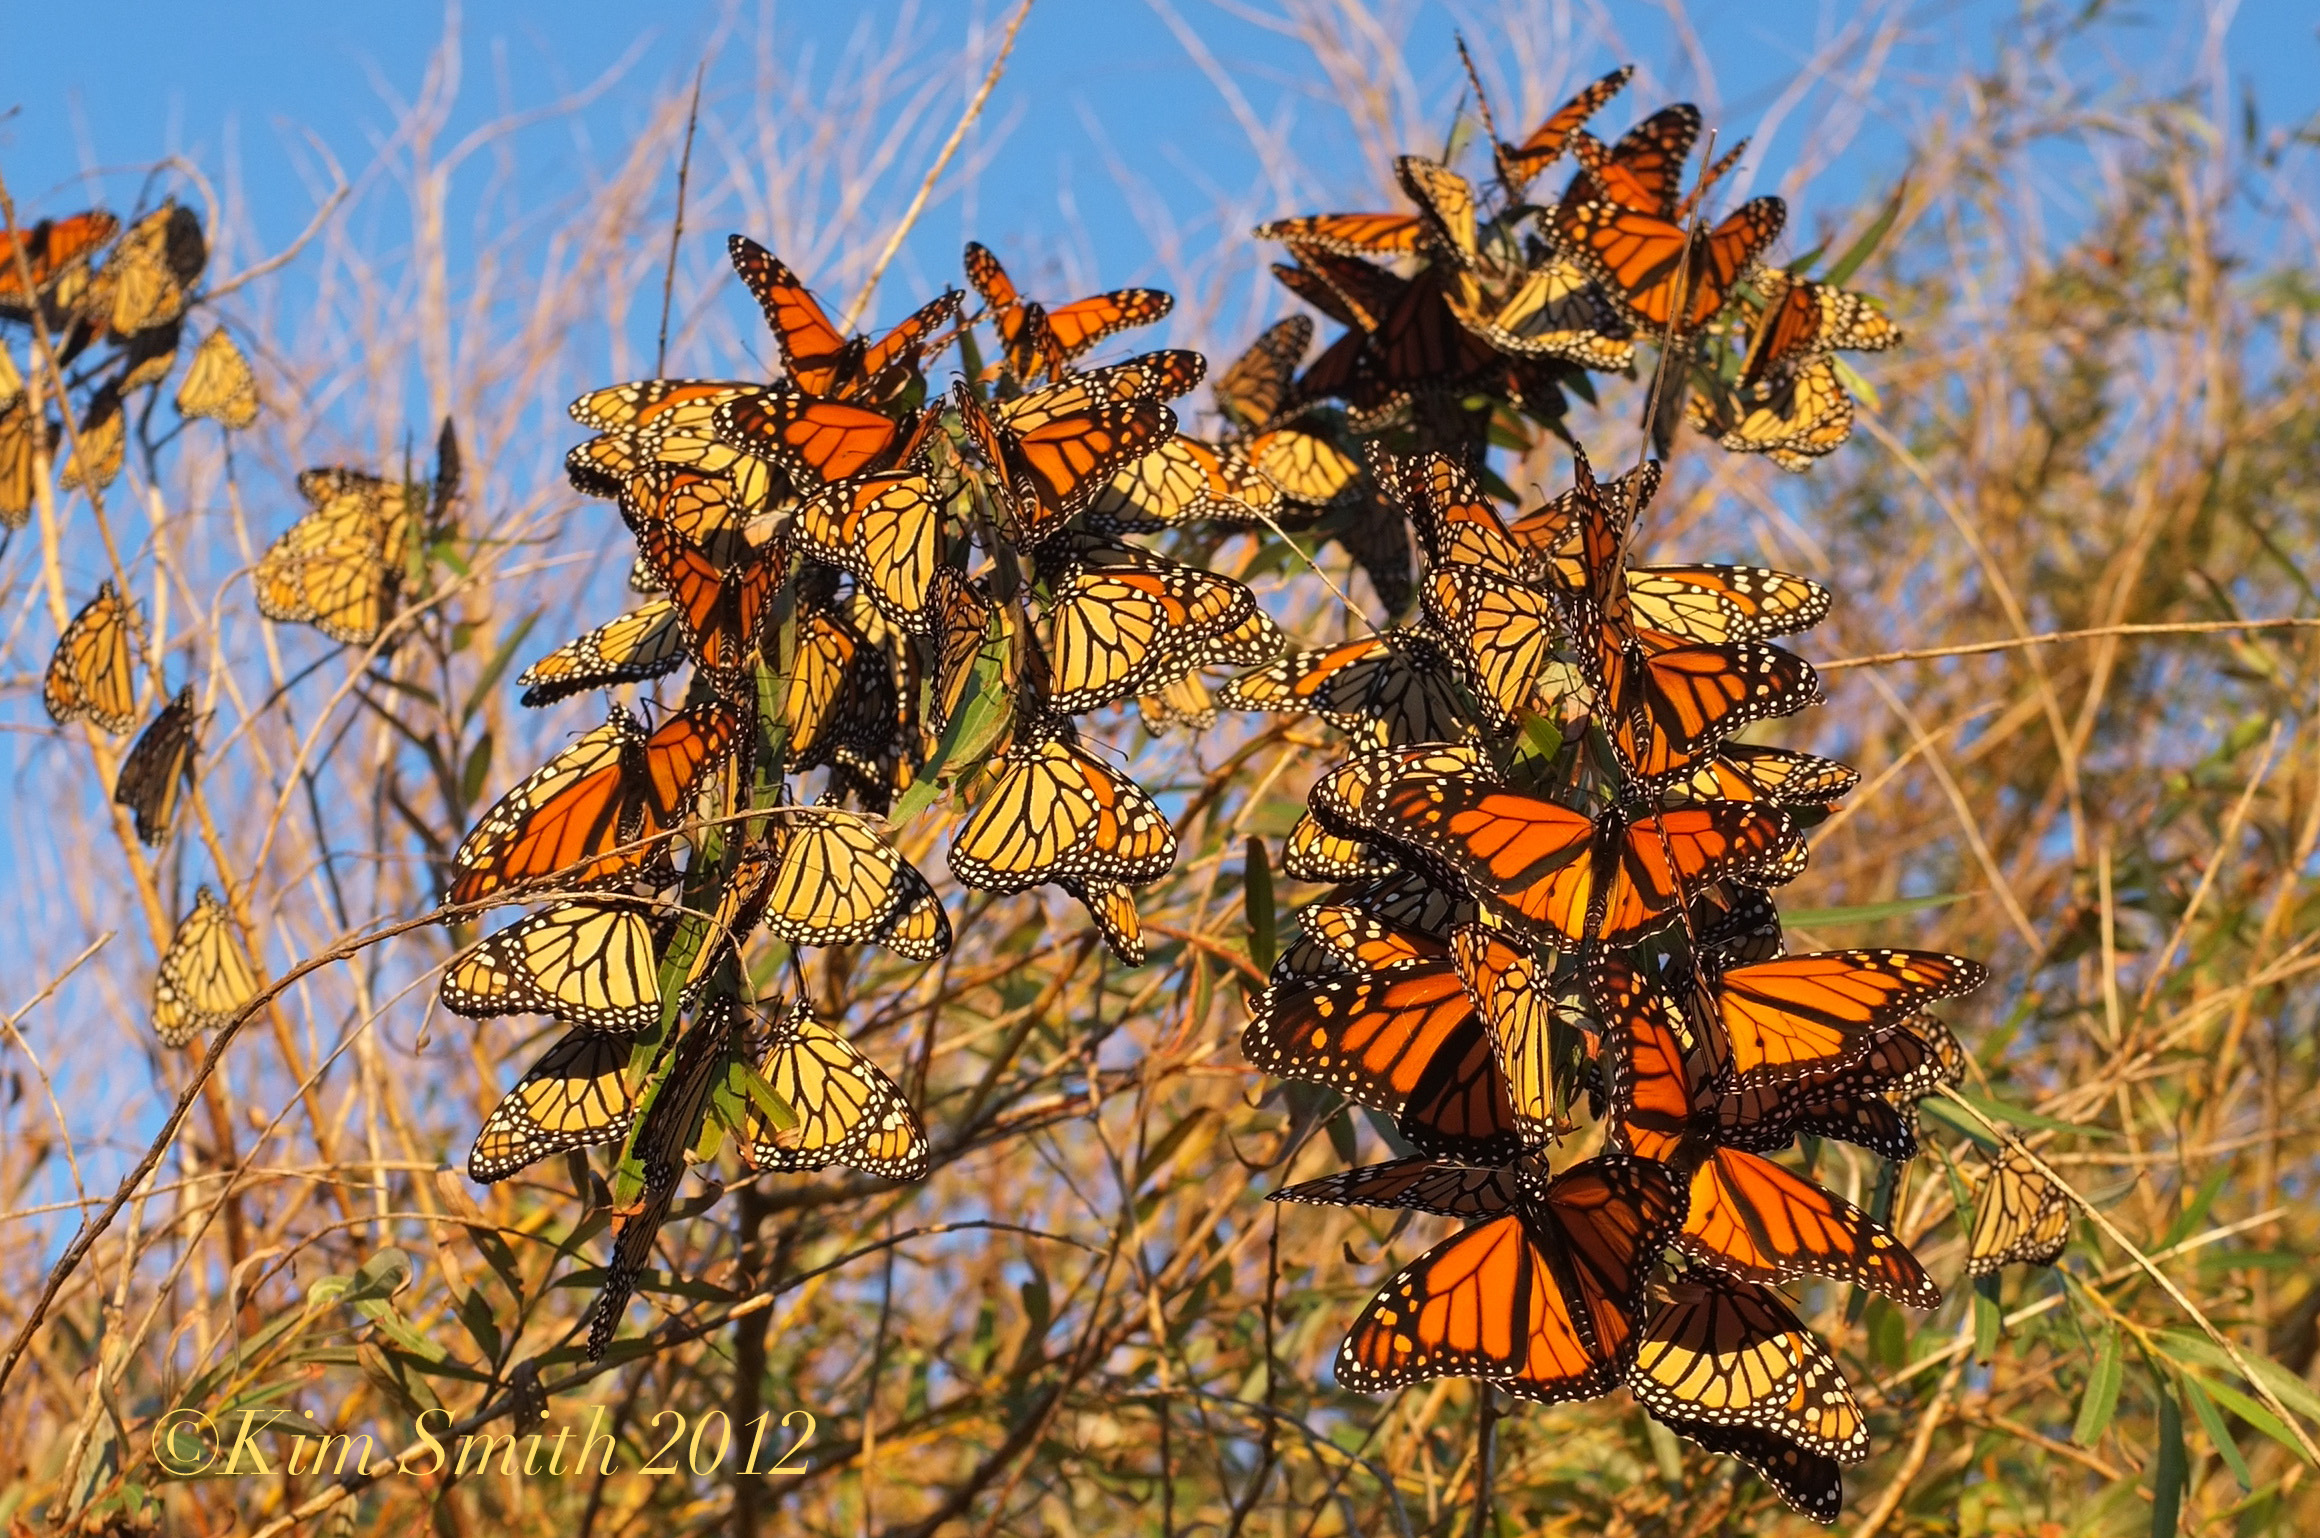 Cape Ann Milkweed Project ~ Place your orders today | Kim Smith Designs